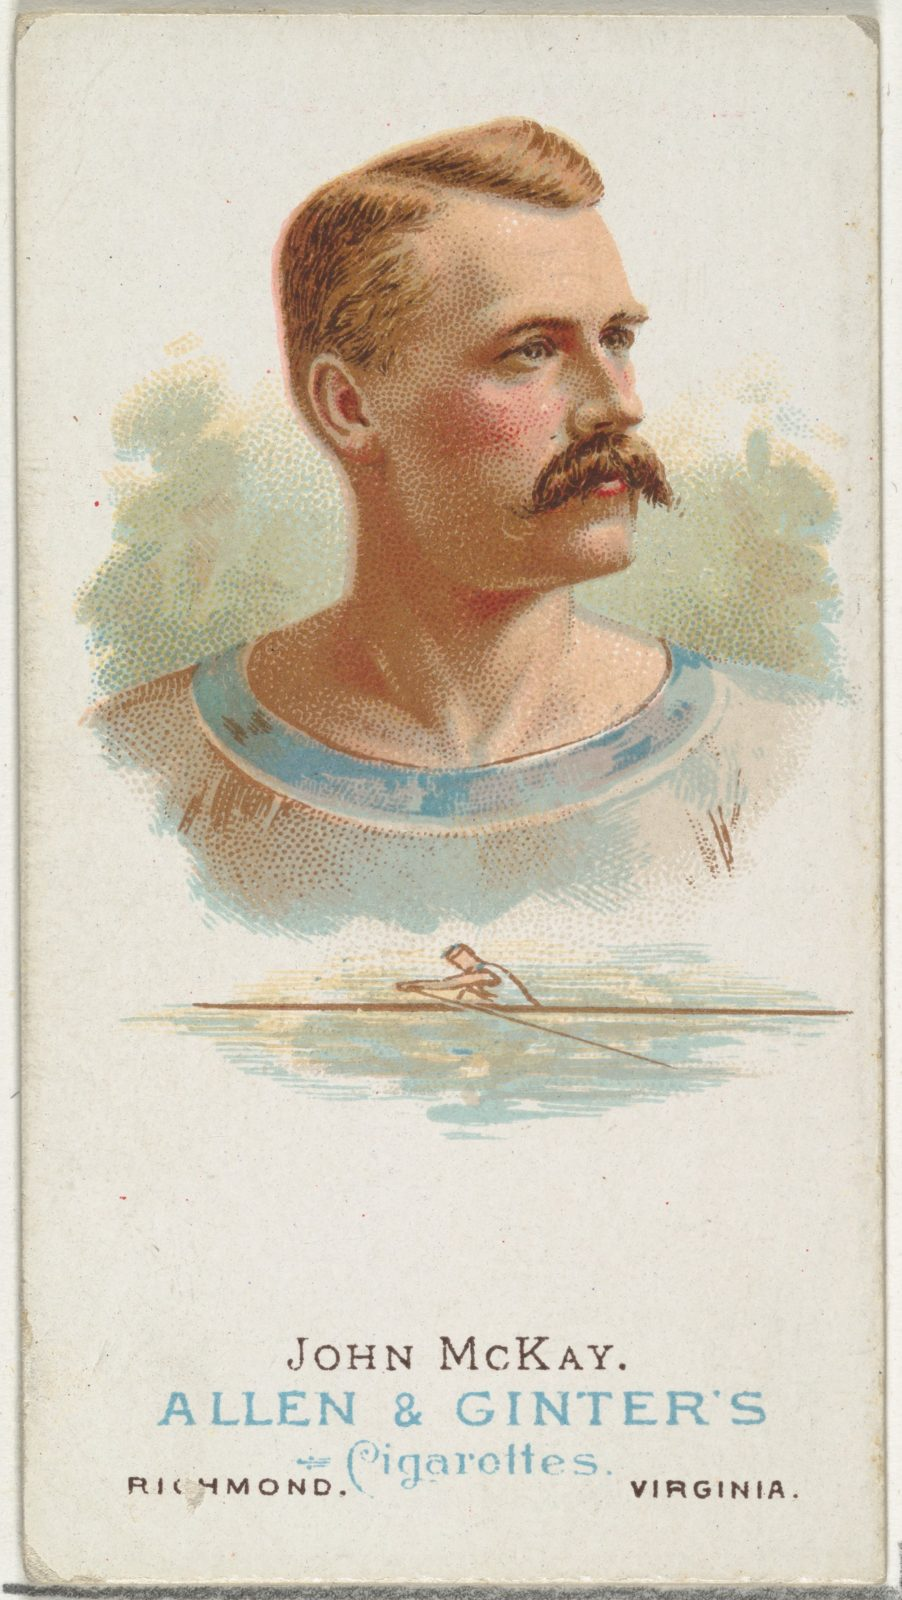 John McKay, Oarsman, from World's Champions, Series 1 (N28) for Allen & Ginter Cigarettes